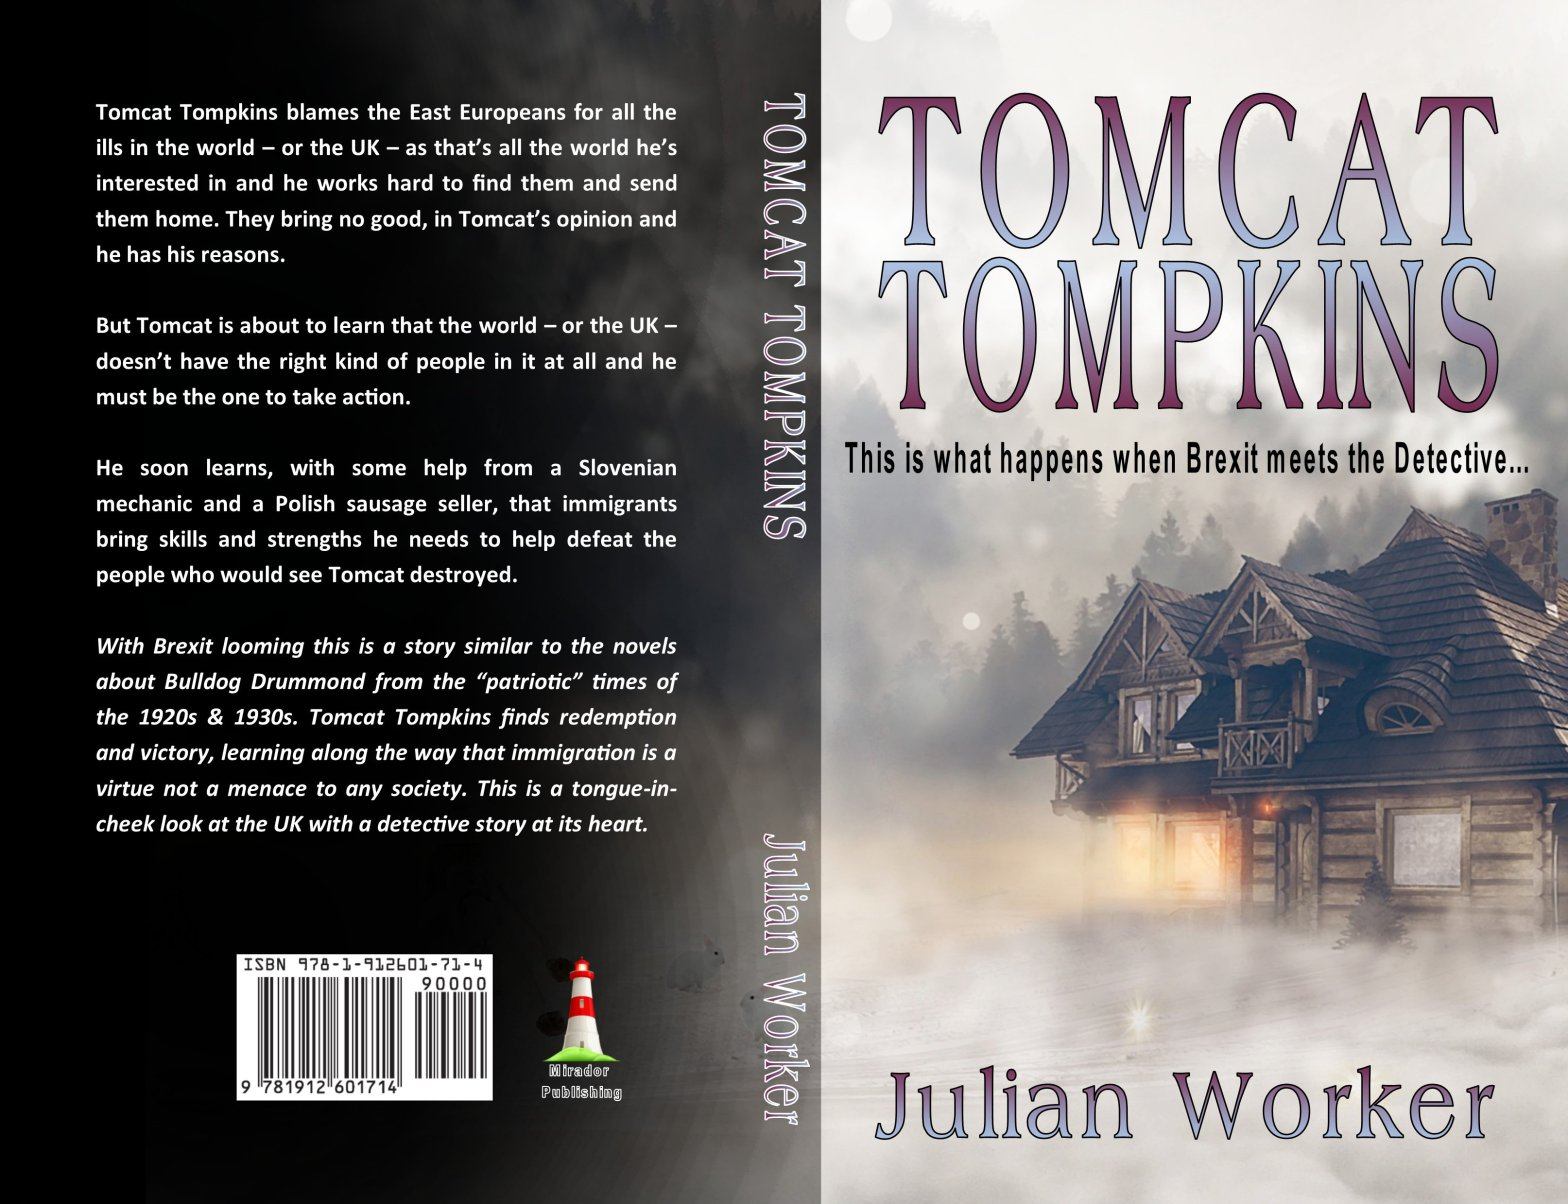 Tomcat Tompkins 23 Julian Worker Fiction Writing